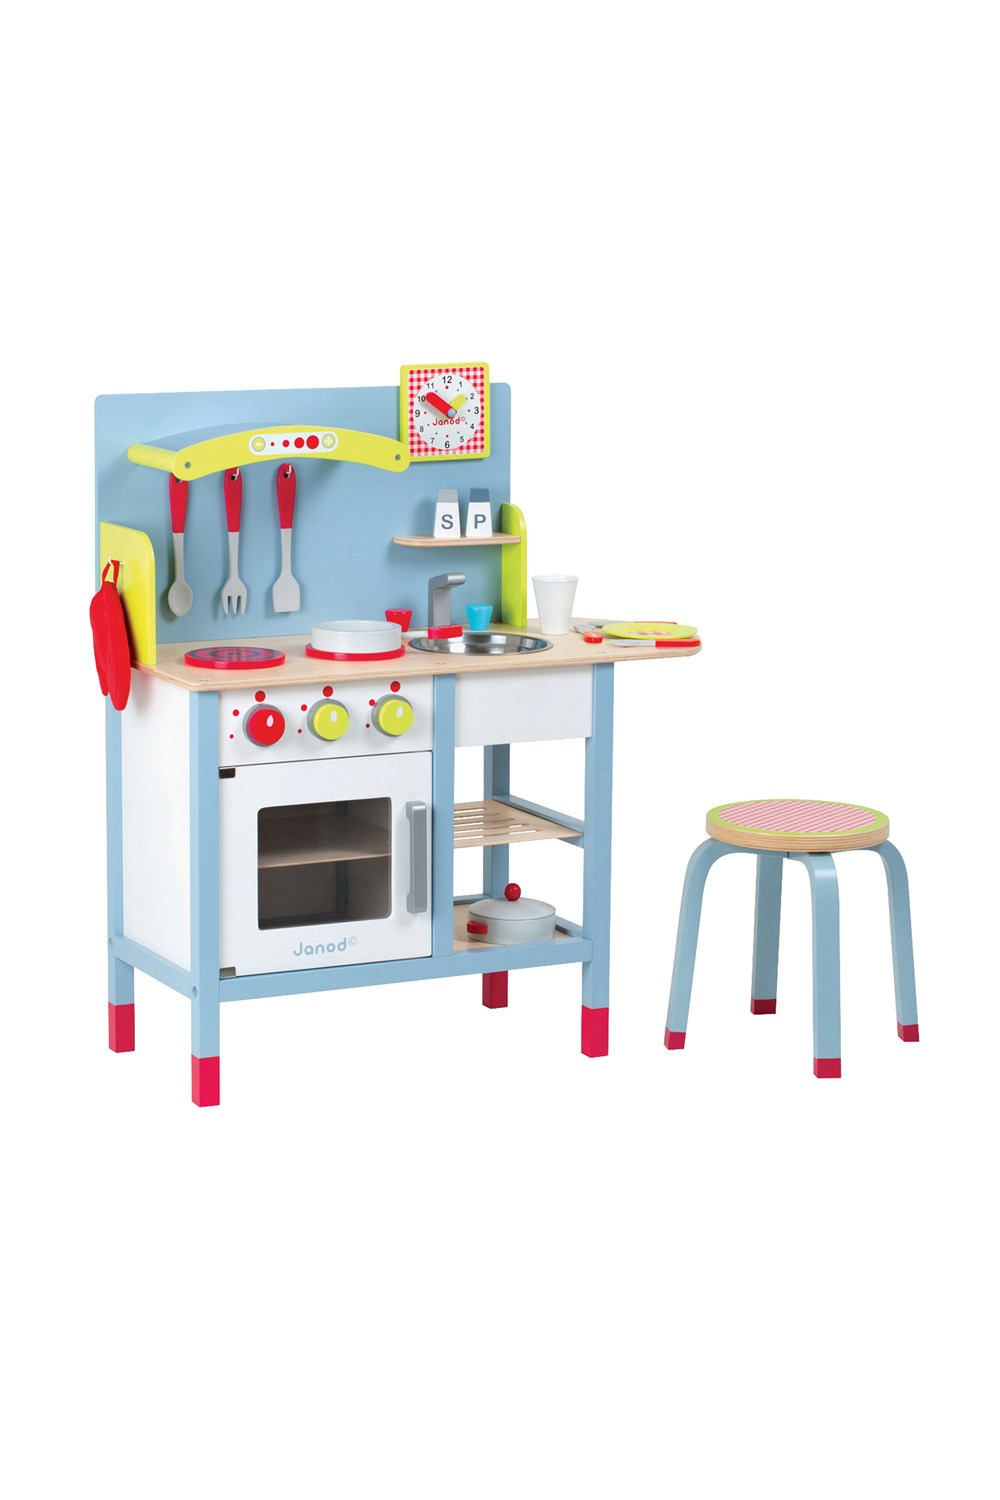 39 picnik 39 duo kitchen playset janod smith caughey 39 s. Black Bedroom Furniture Sets. Home Design Ideas